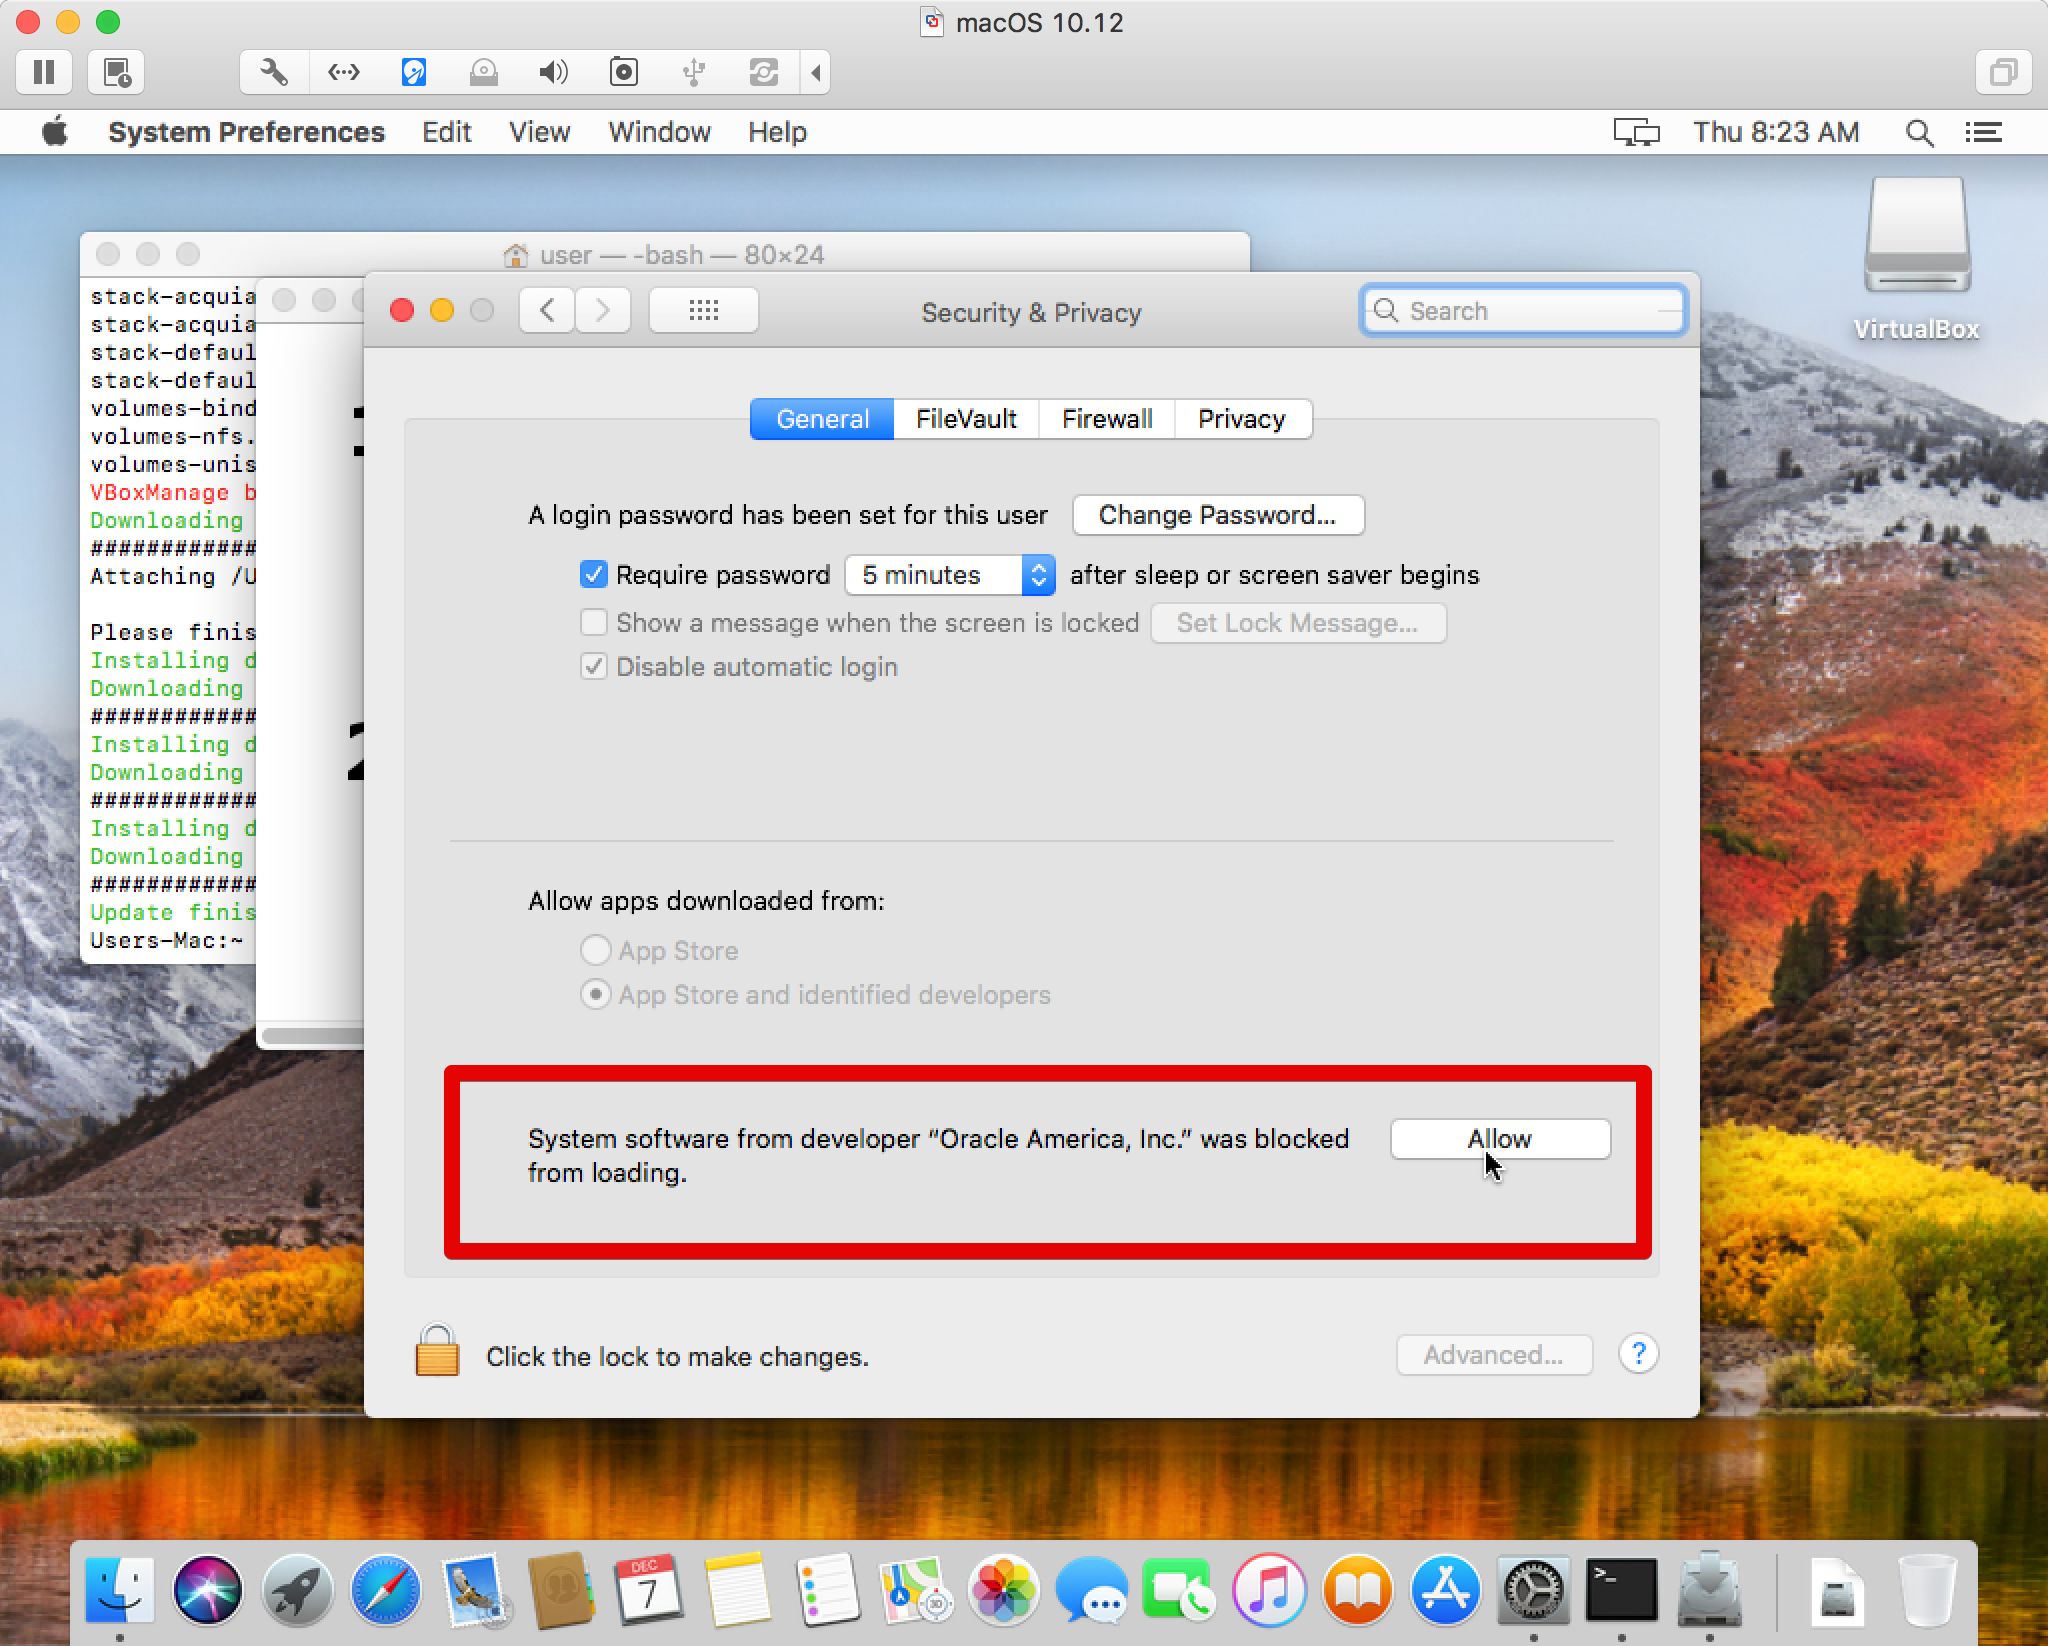 how to install macos sierra 10.12 on pc without mac with full guide